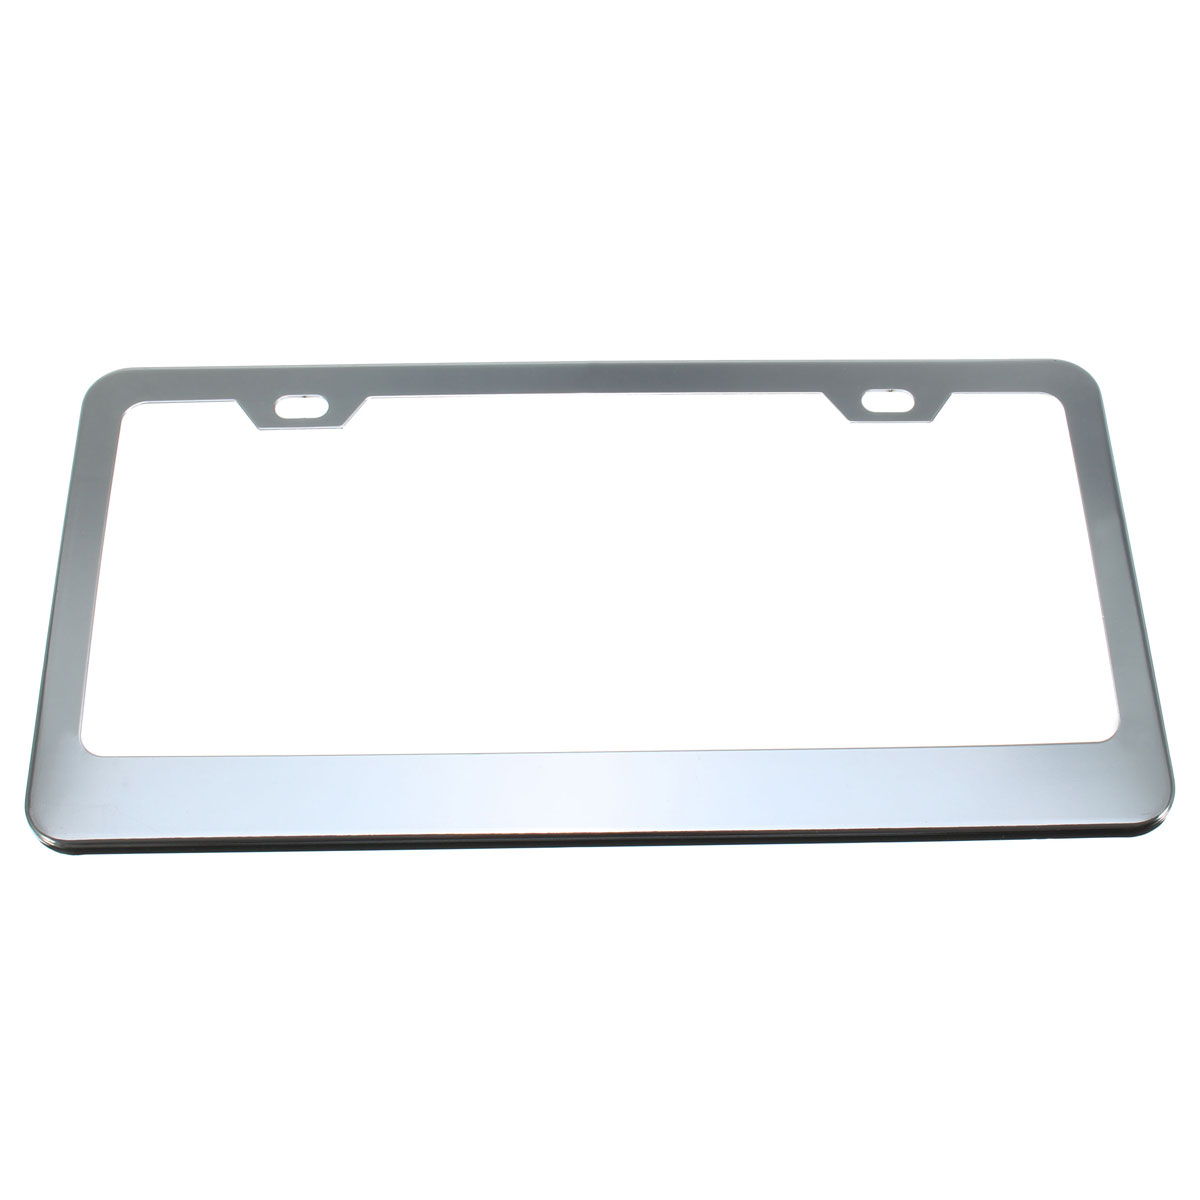 1X SCREW CAPS TAG COVER +CAR STYLING SLIVER STAINLESS STEEL METAL LICENSE PLATE FRAME(China (Mainland))